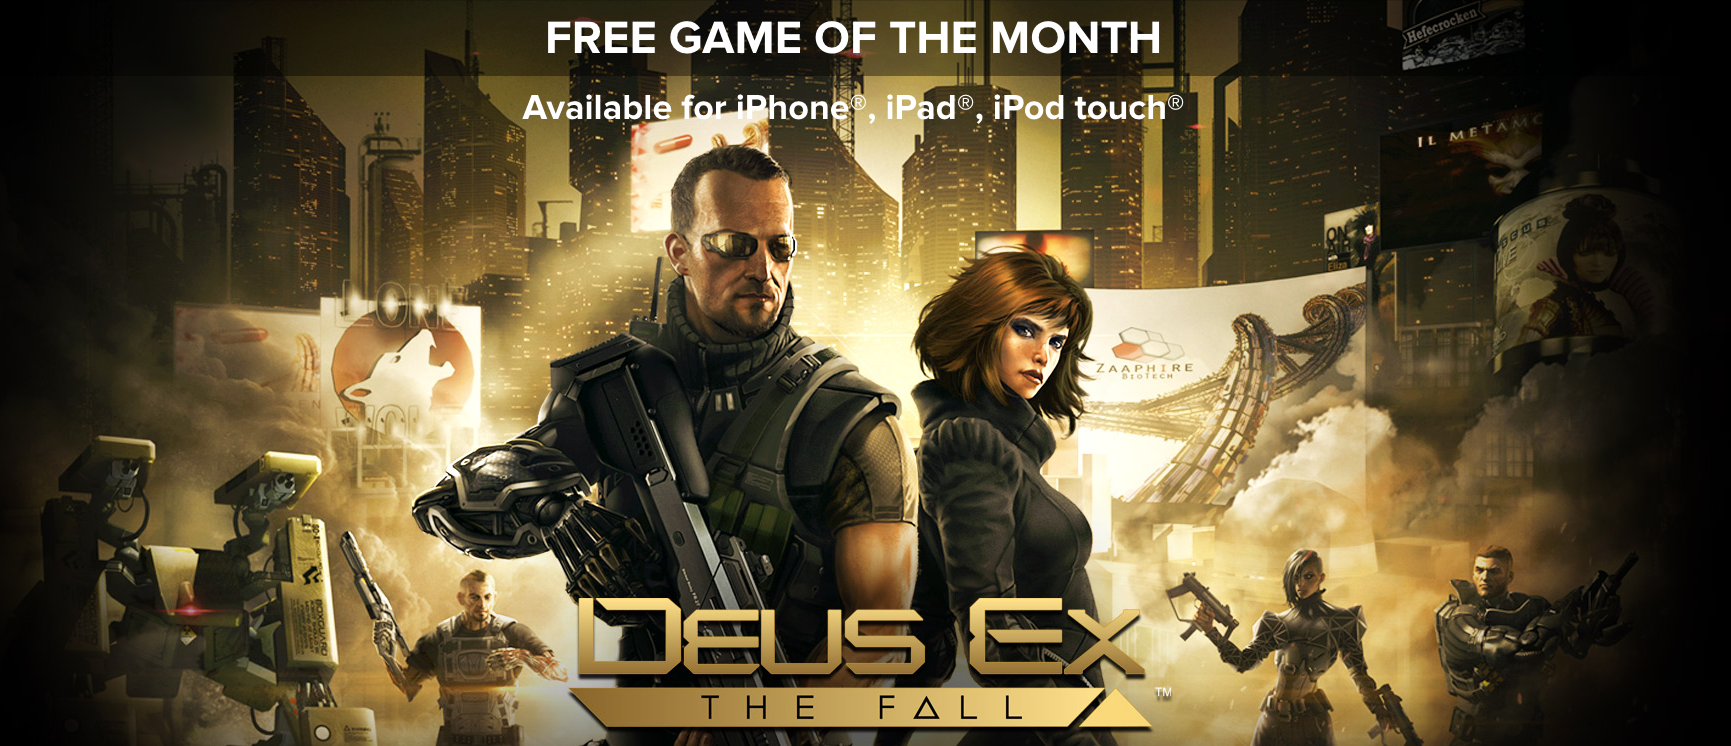 ign_free_app_of_the_month_deus_ex